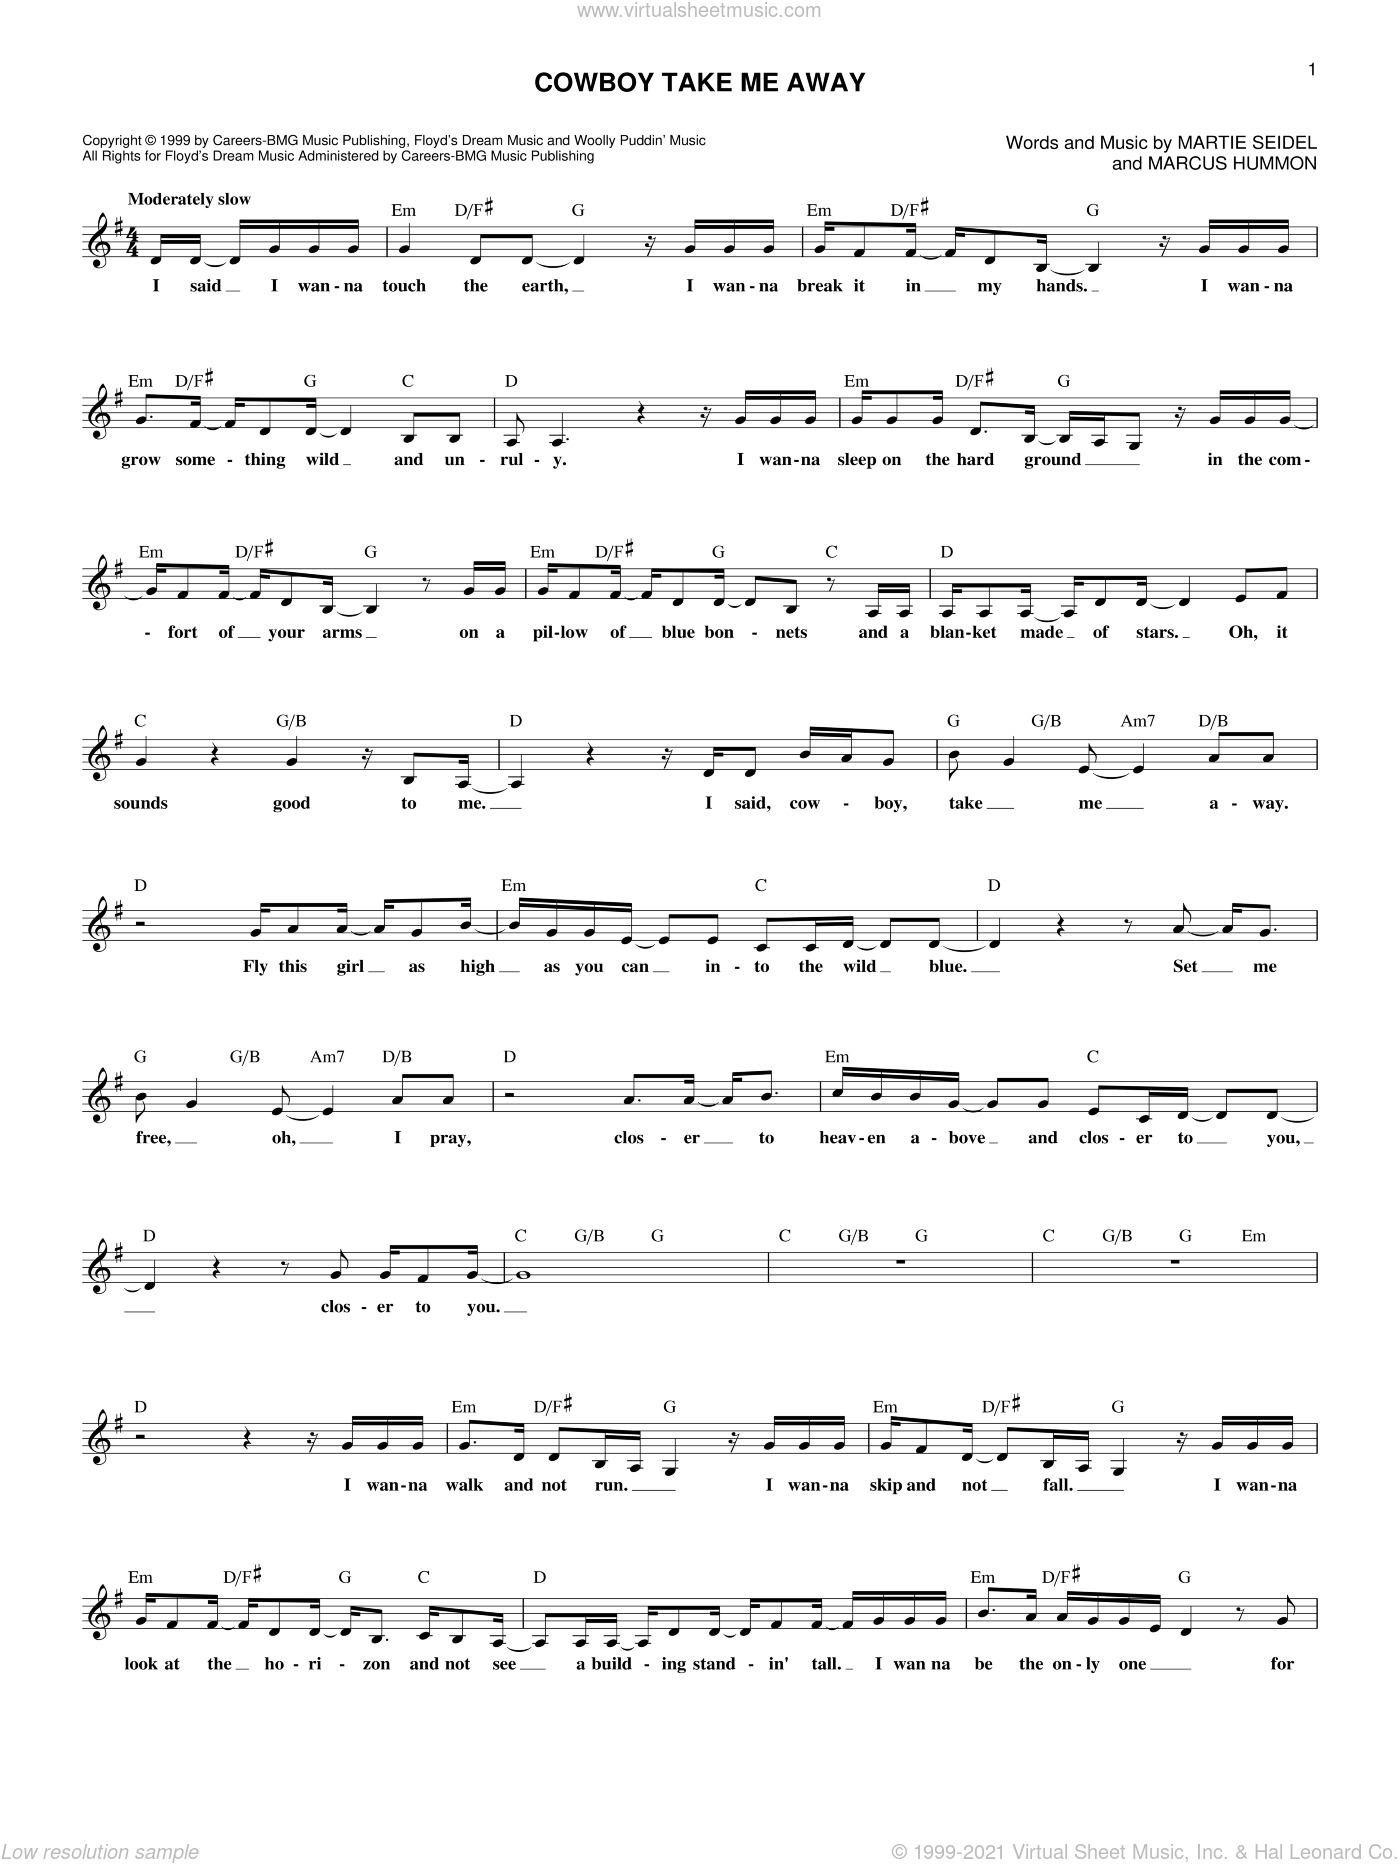 Cowboy Take Me Away sheet music for voice and other instruments (fake book) by Dixie Chicks, The Chicks, Marcus Hummon and Martie Seidel, intermediate skill level